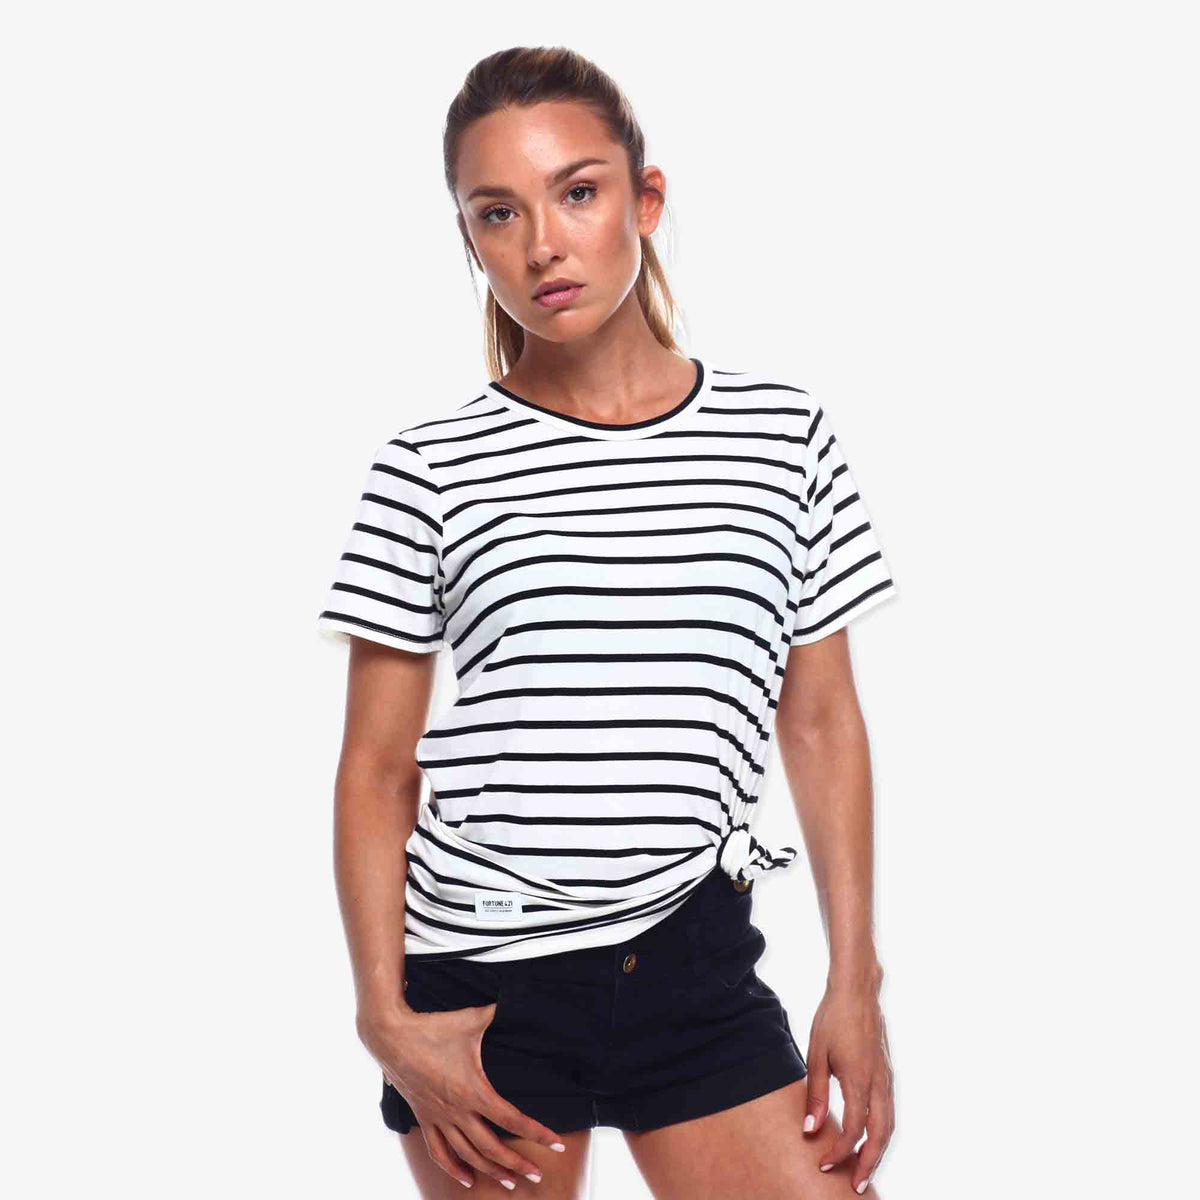 Pennant Stripe Tee - Natural & Black